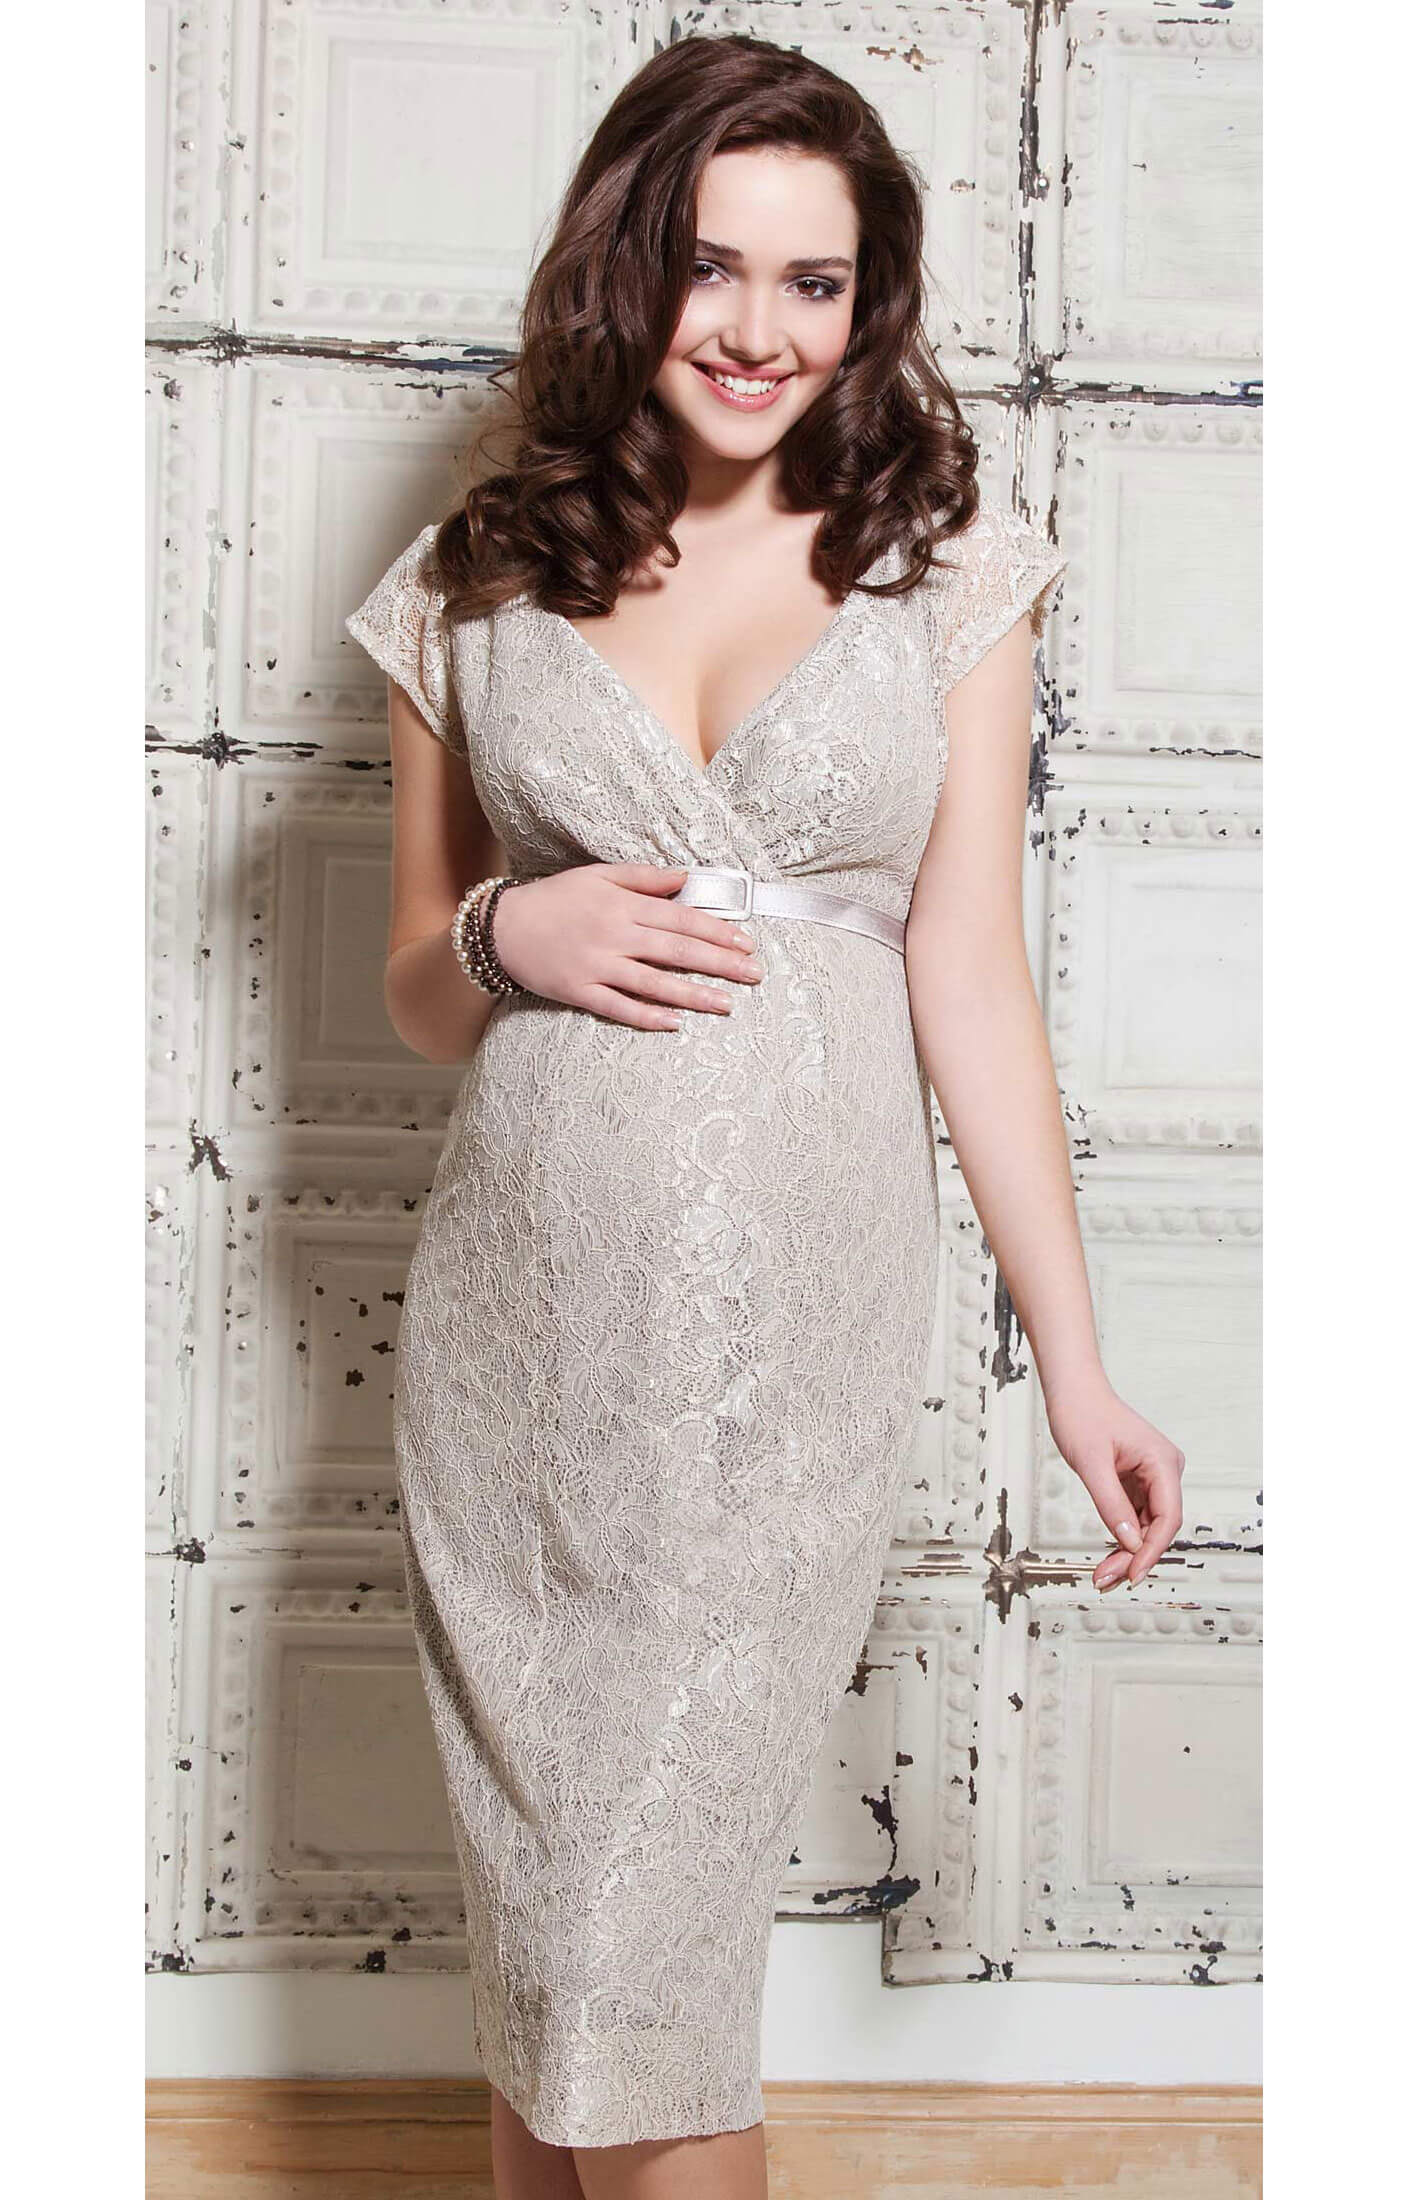 Evelyn maternity dress champagne beige maternity for Beige dress for wedding guest